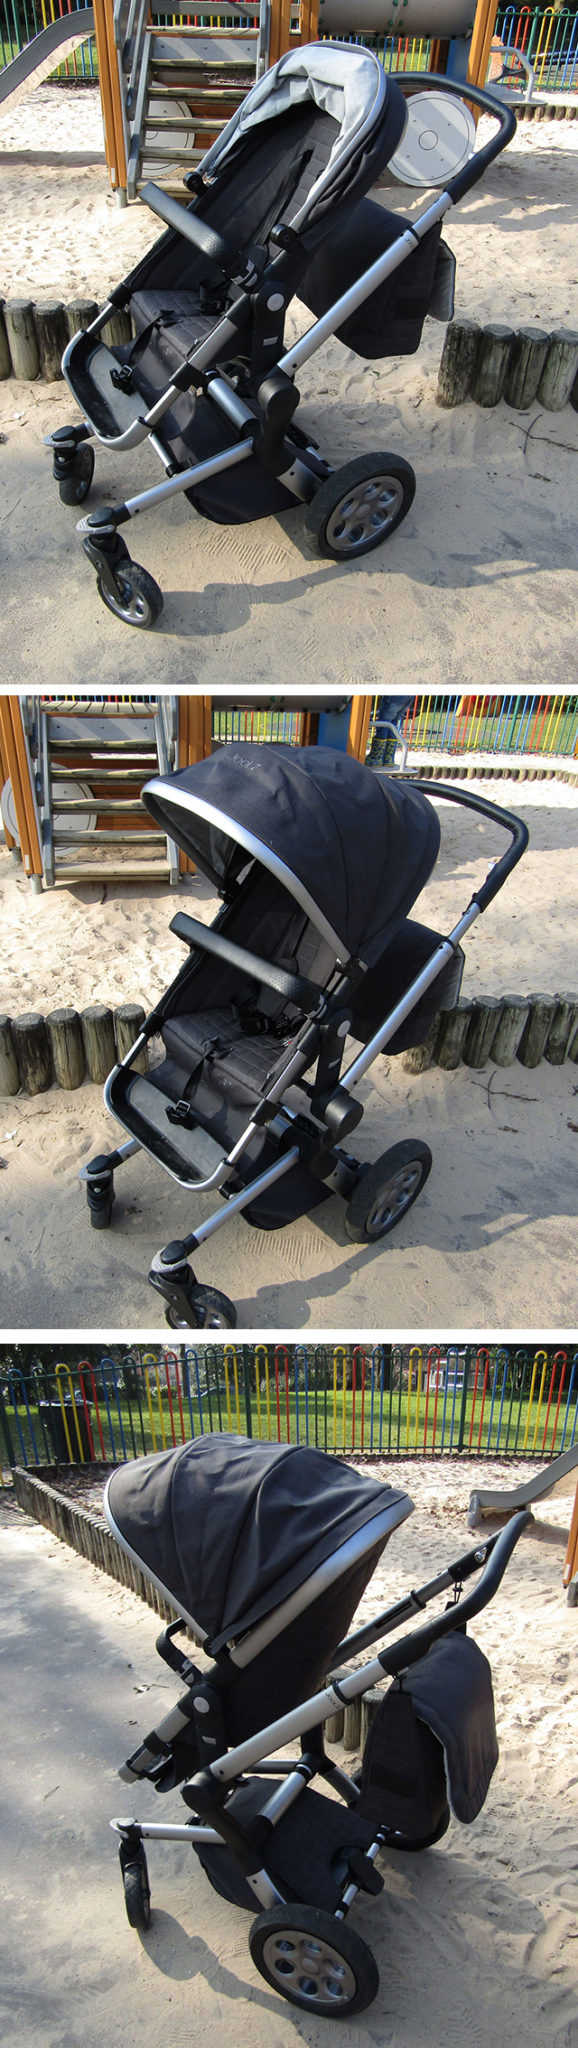 Joolz Buggy Board Uk Is The Joolz Day Quadro Buggy Worth The Money This Mama